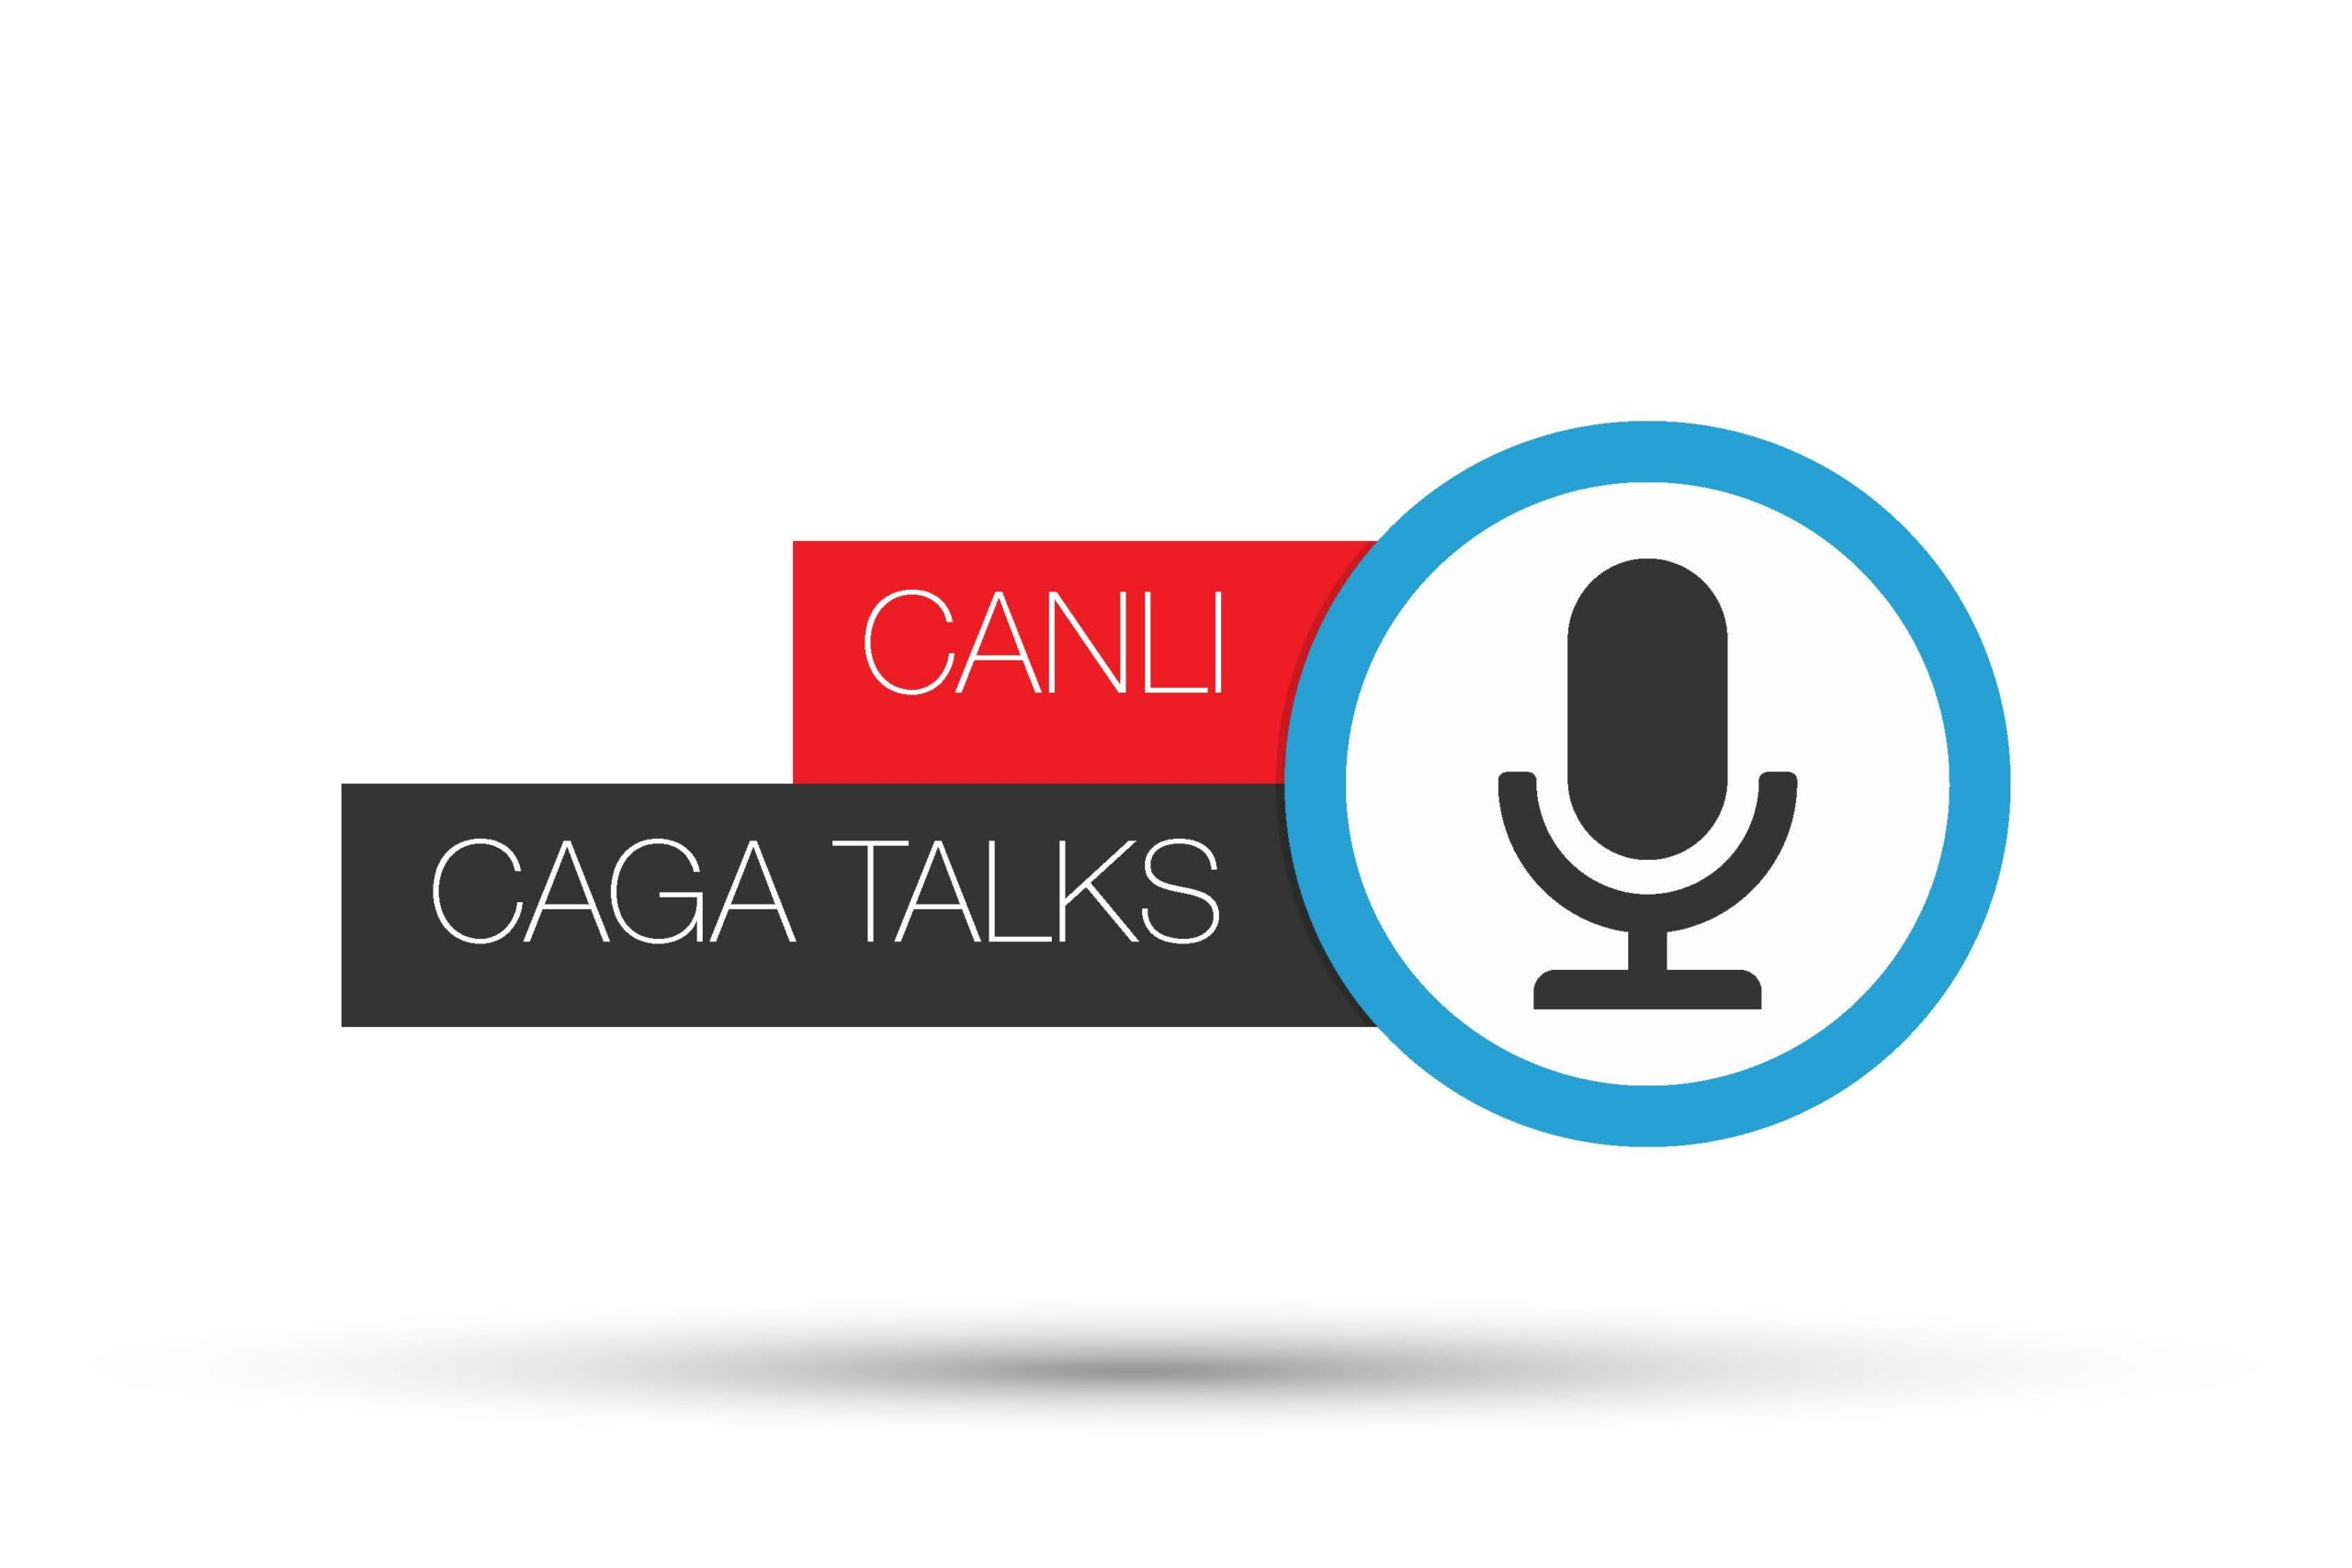 Caga Talks